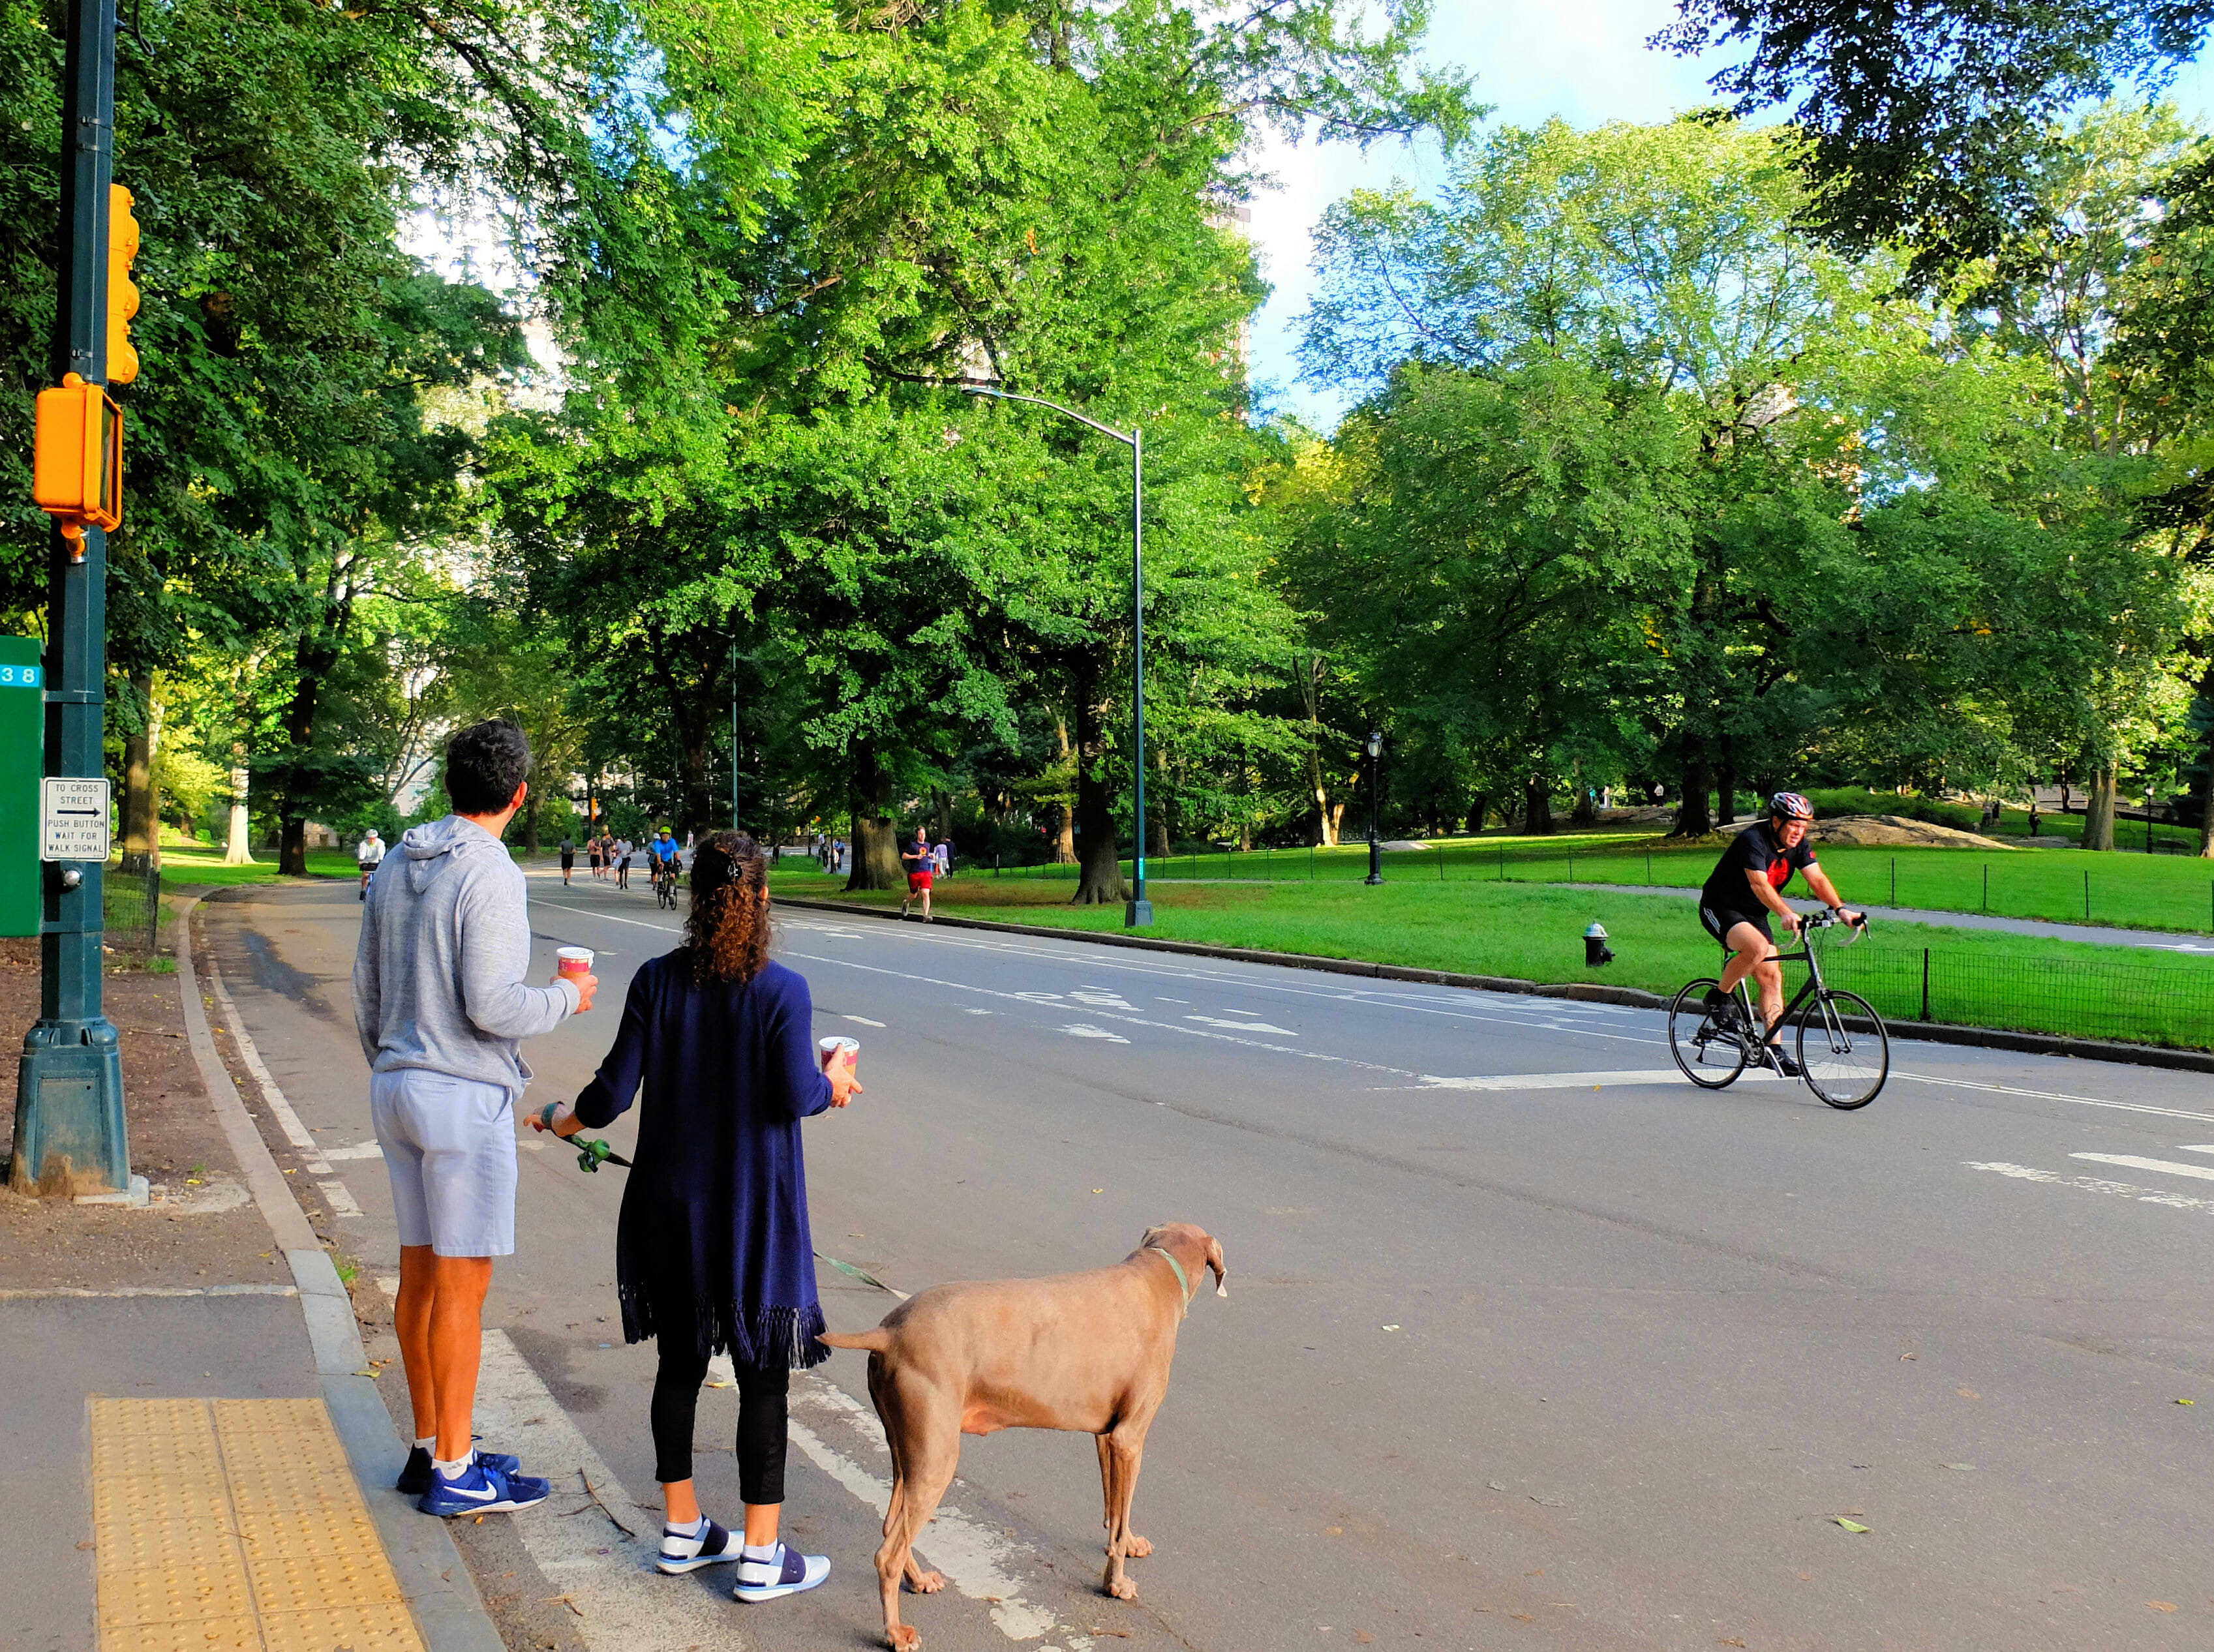 Biking in Central Park – High Quality Wallpaper